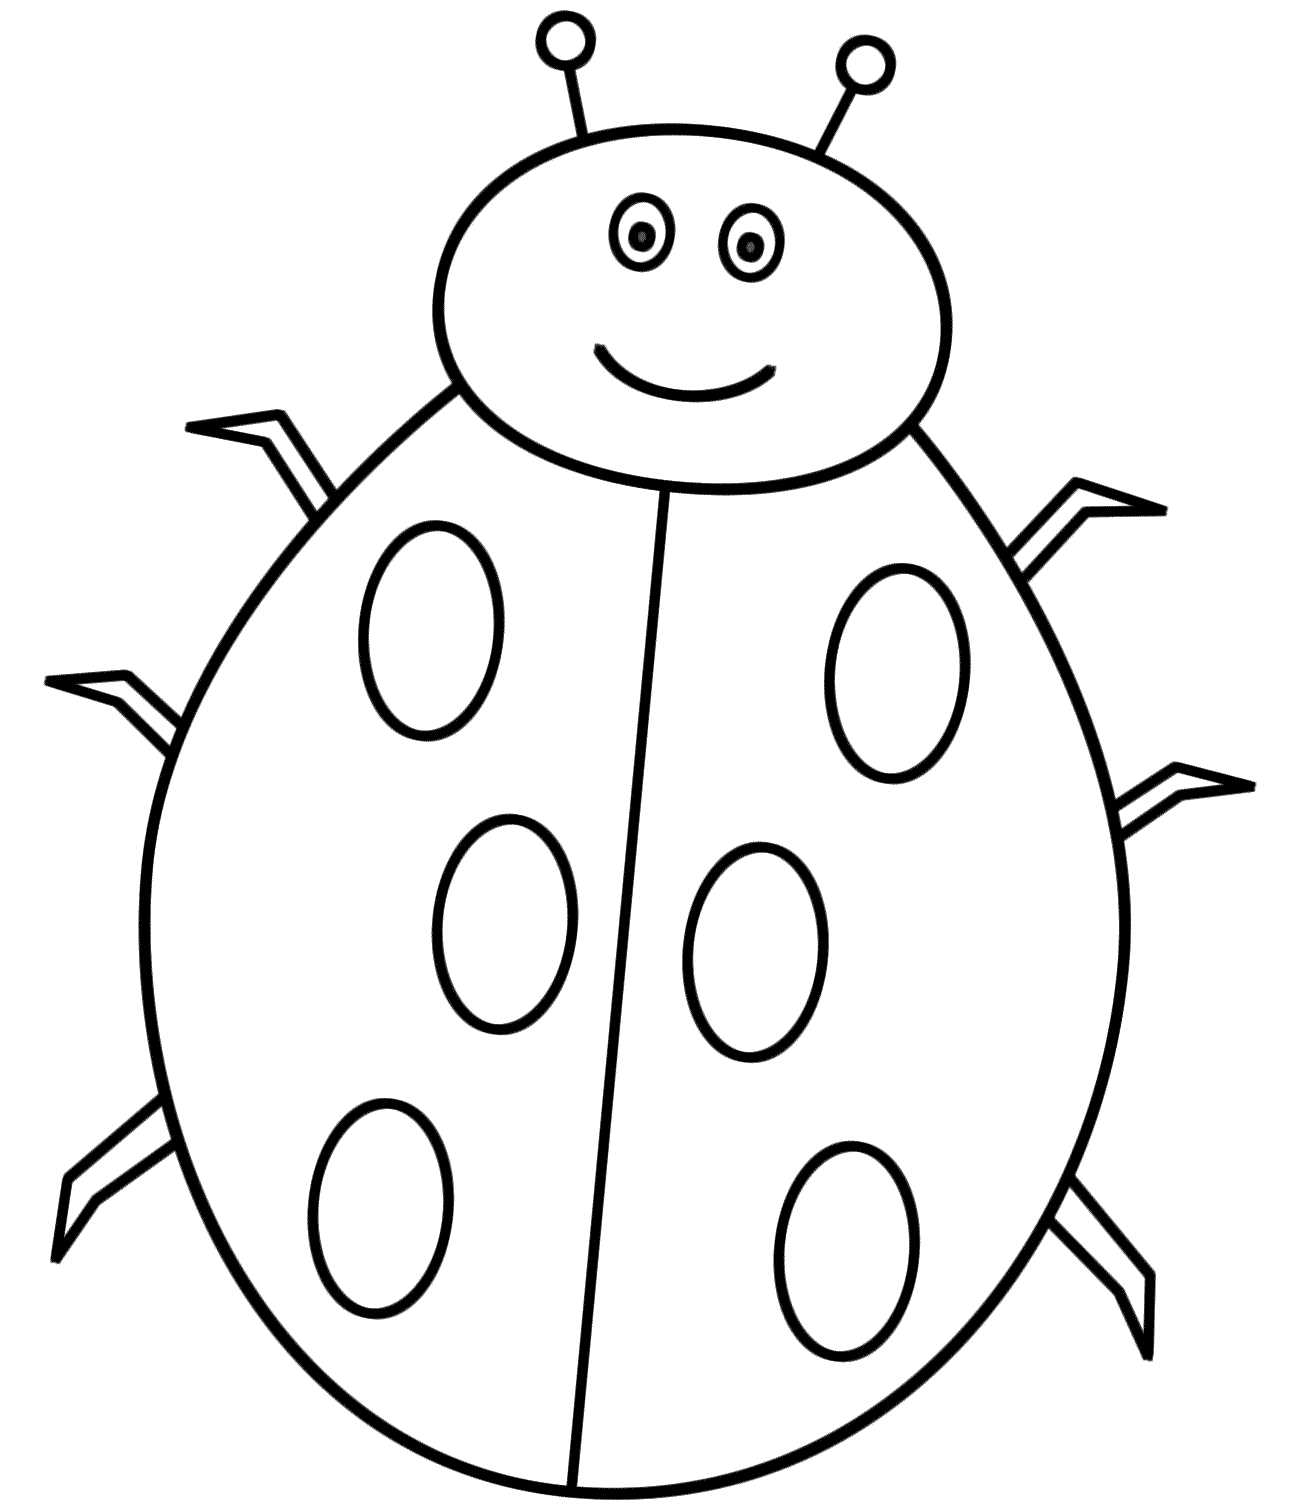 ladybird colouring page lady bird colouring page mummypagesmummypagesie colouring ladybird page